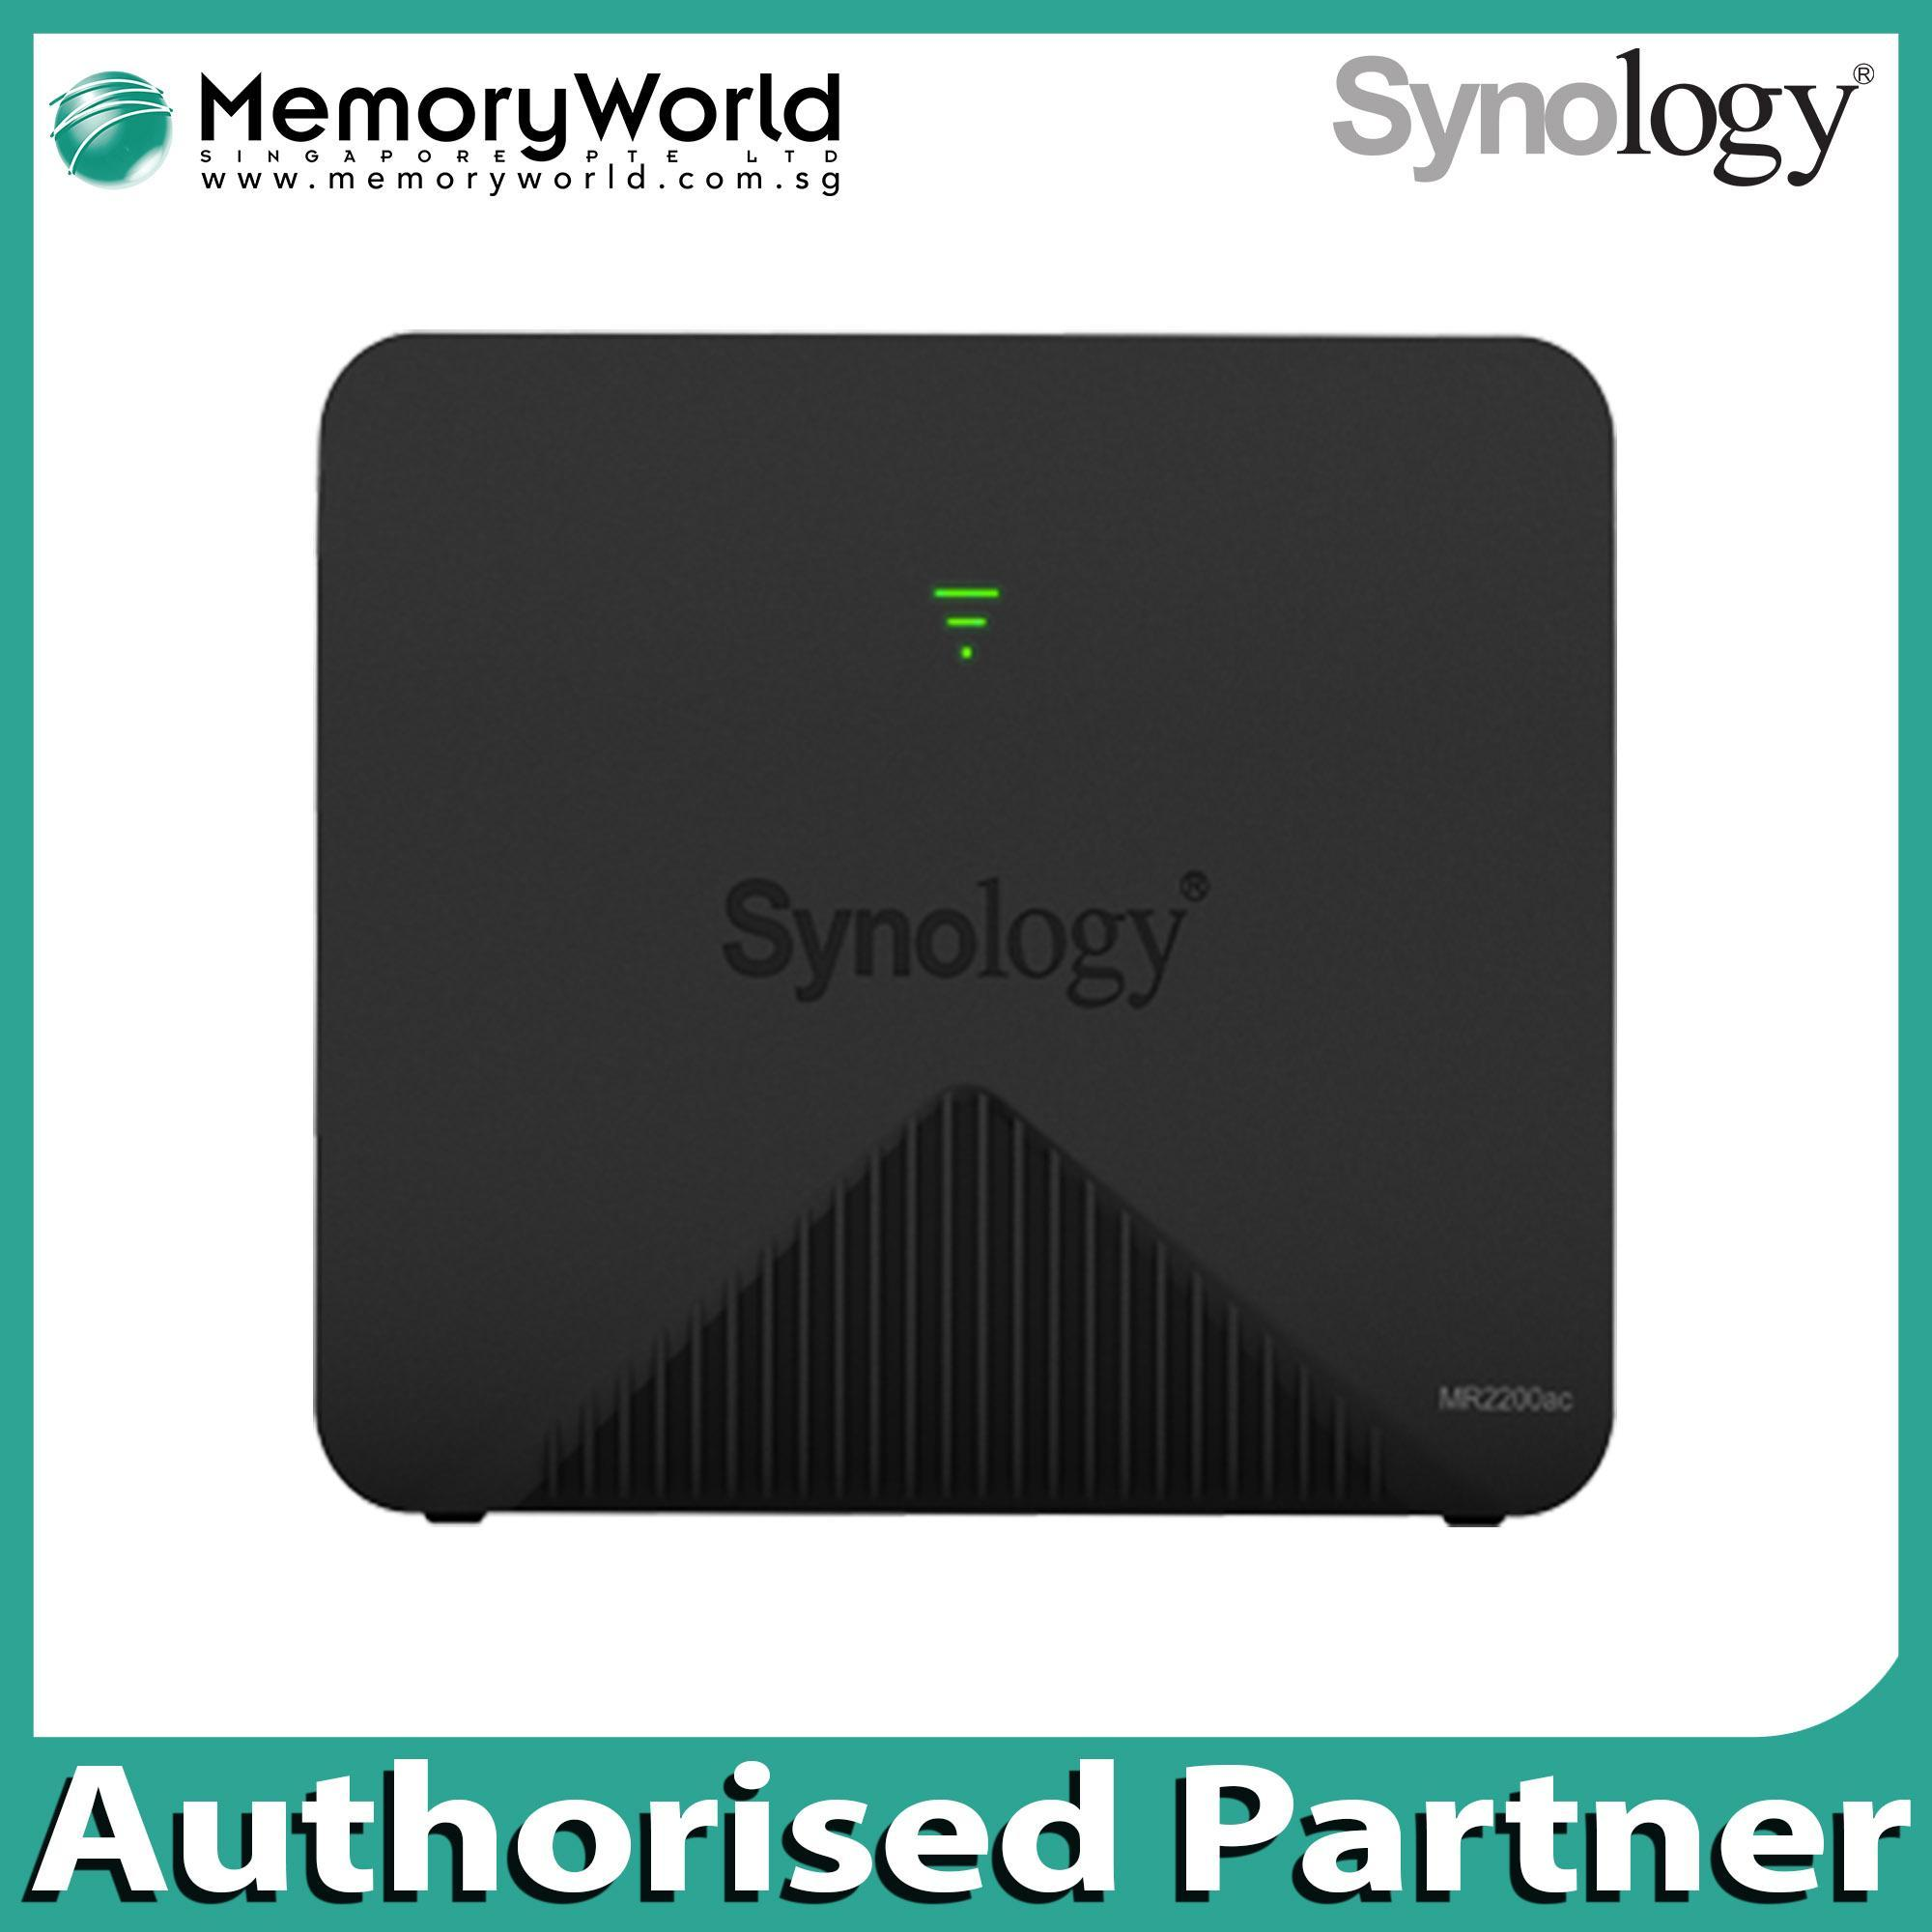 Synology,QNAP - Buy Synology,QNAP at Best Price in Singapore | www